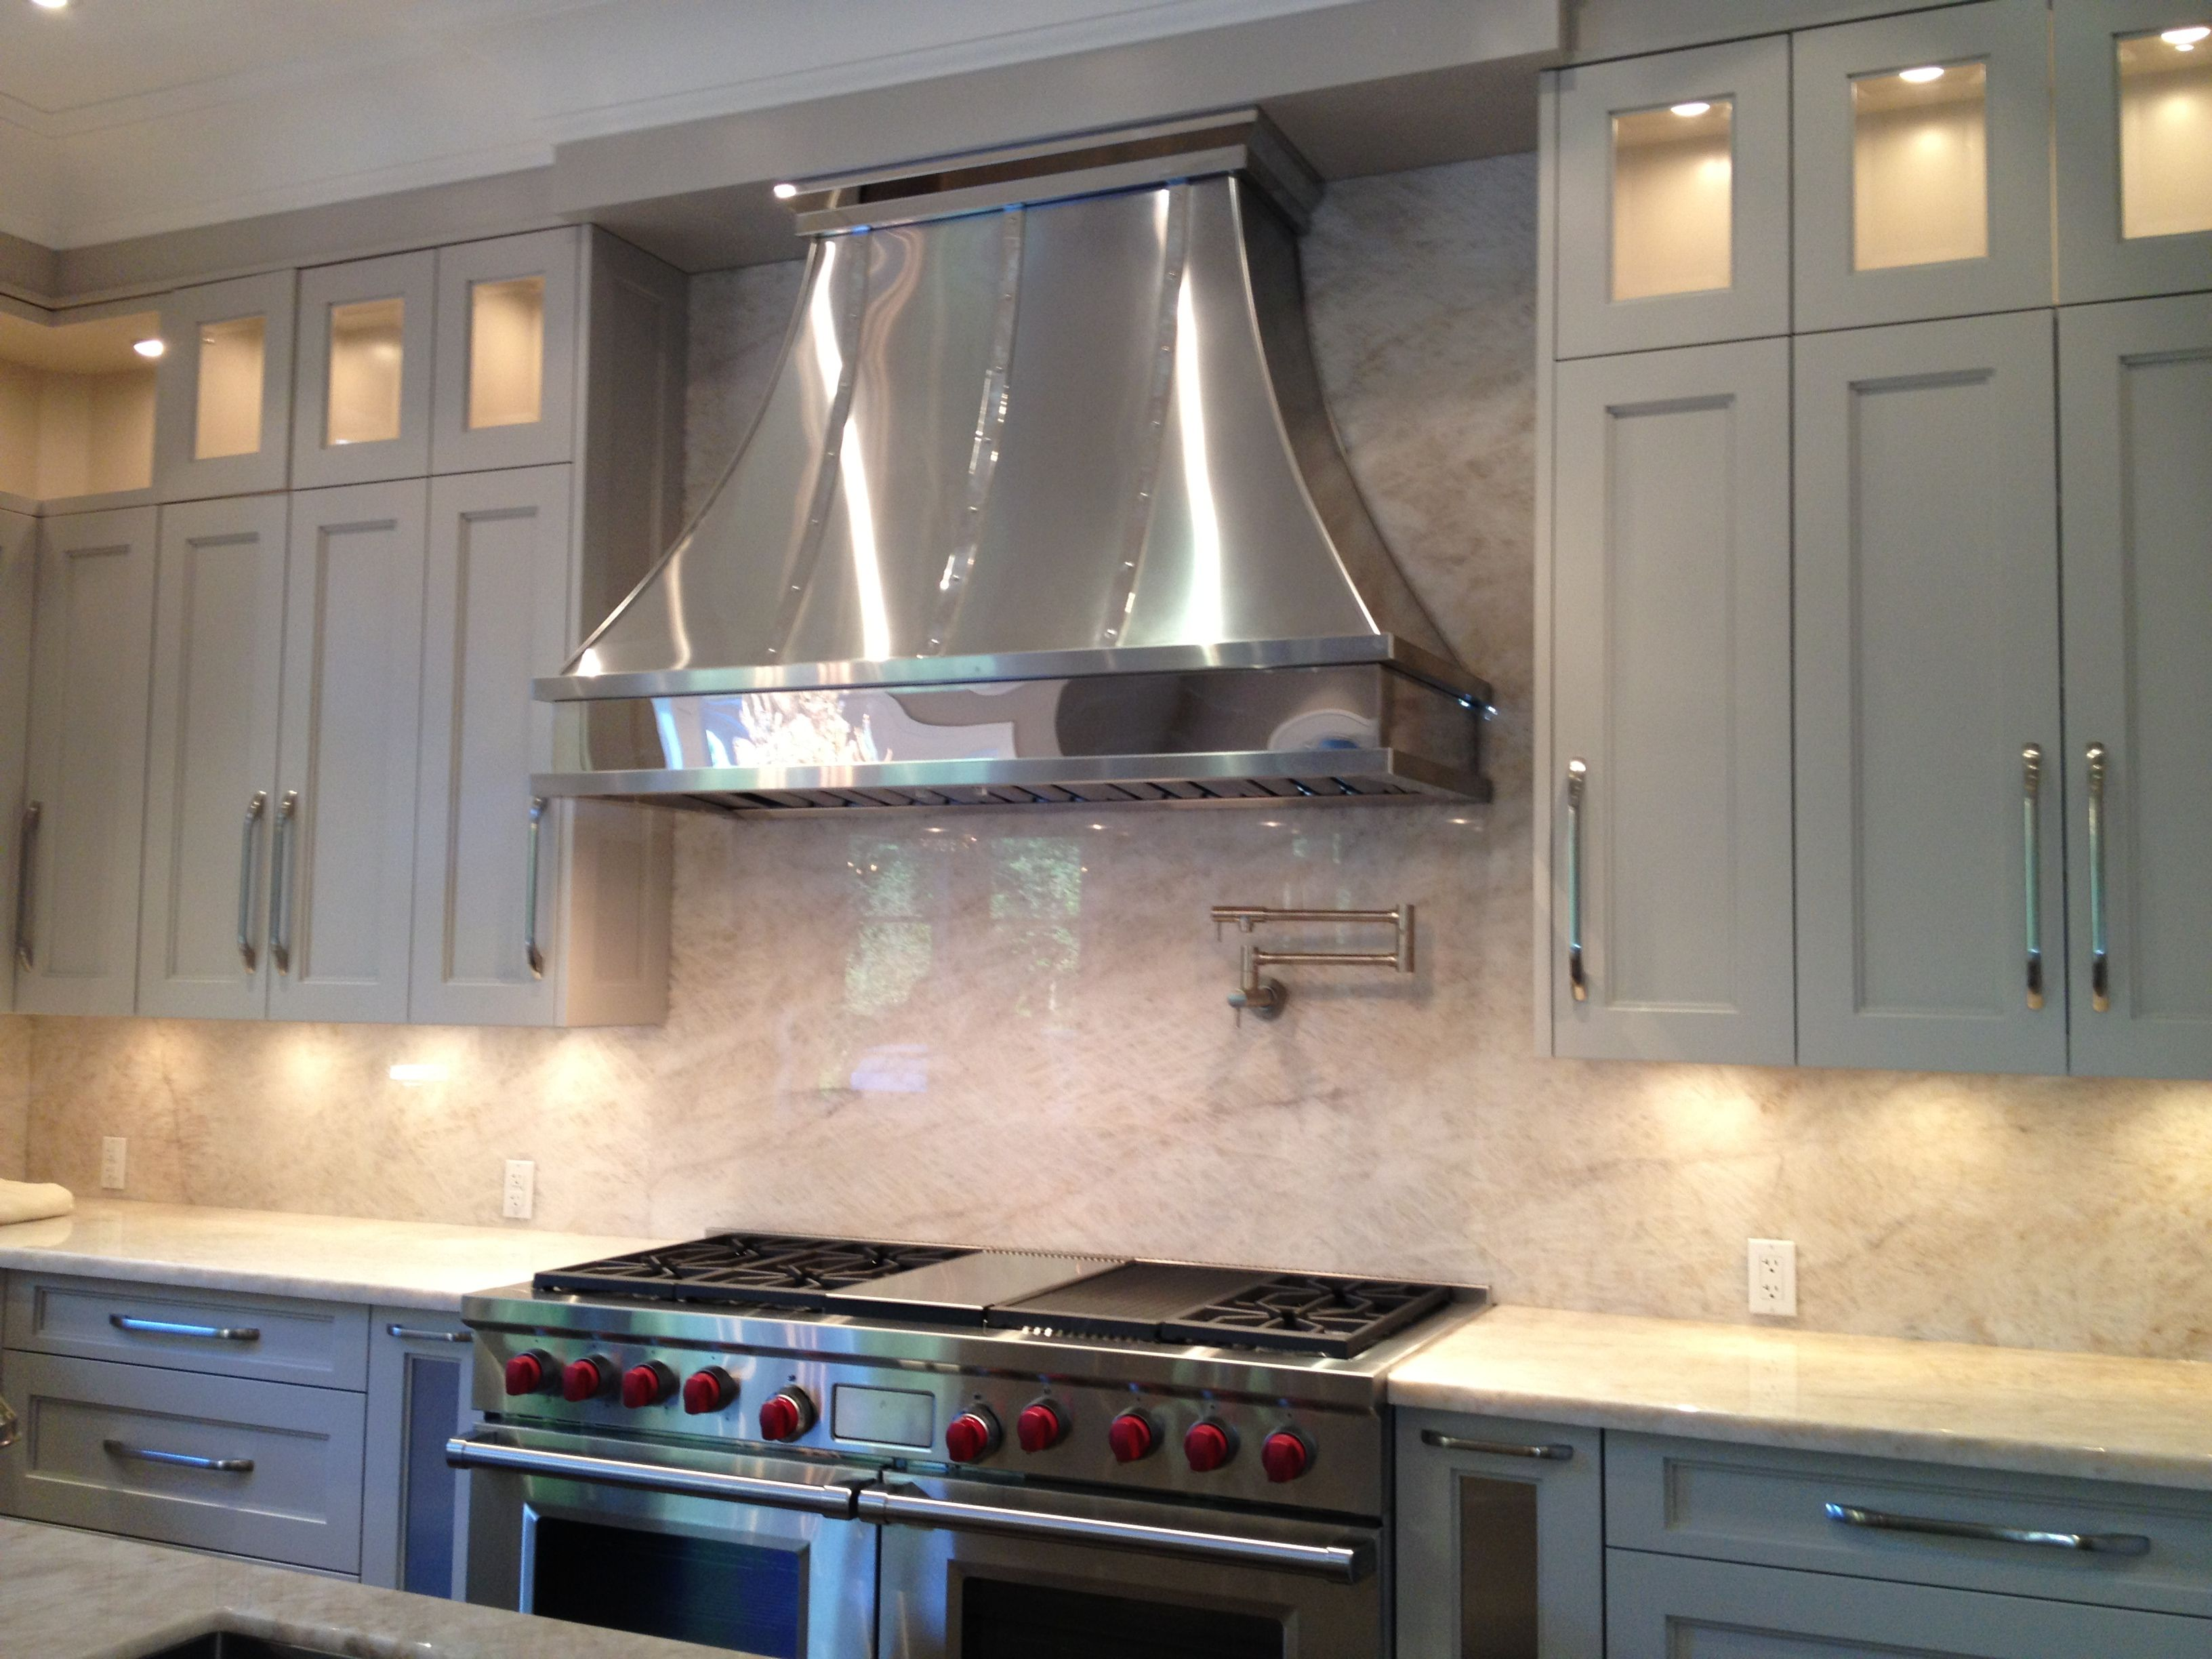 Polished Stainless Steel Range Hood 15 002 Www Customrangehoods Ca